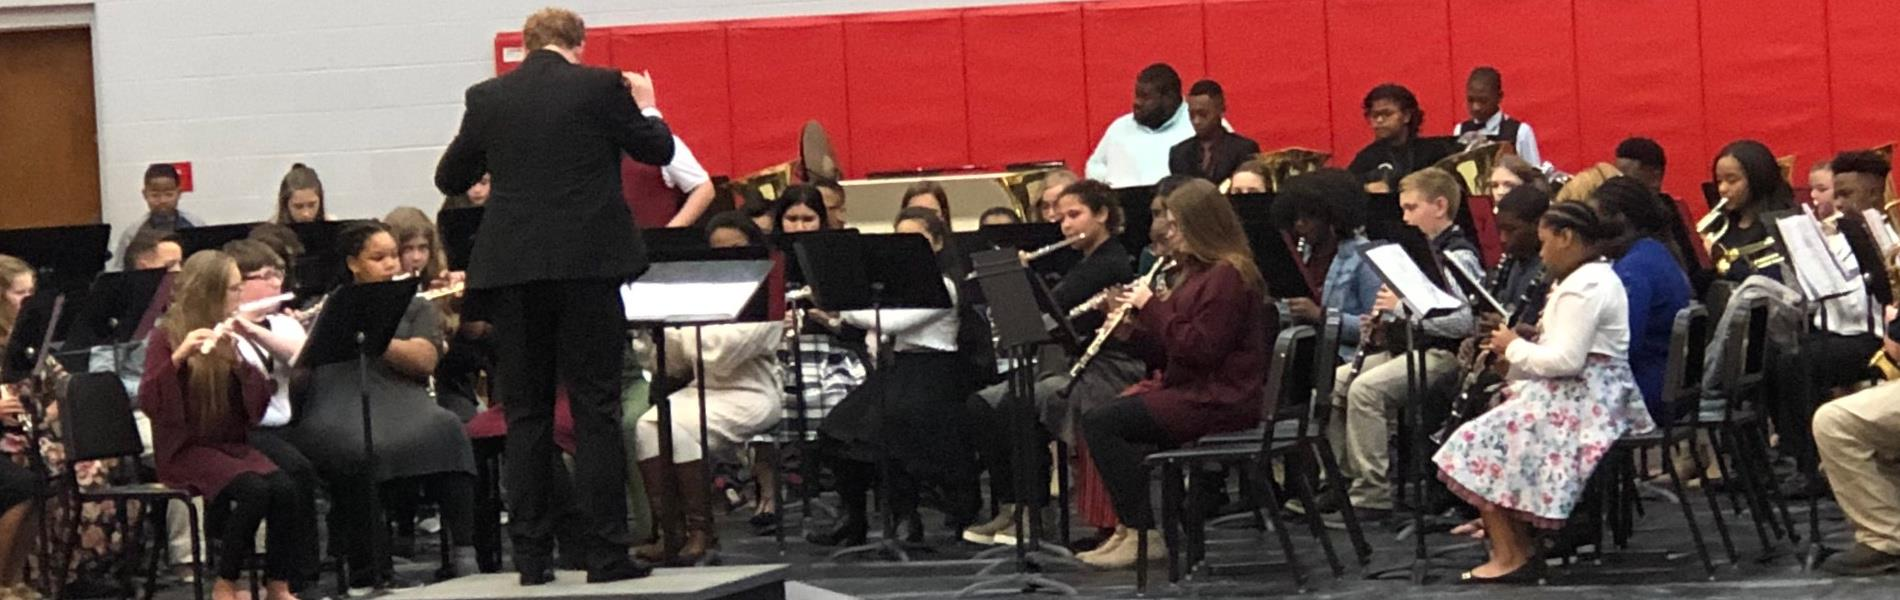 Mr. Garner directs band concert